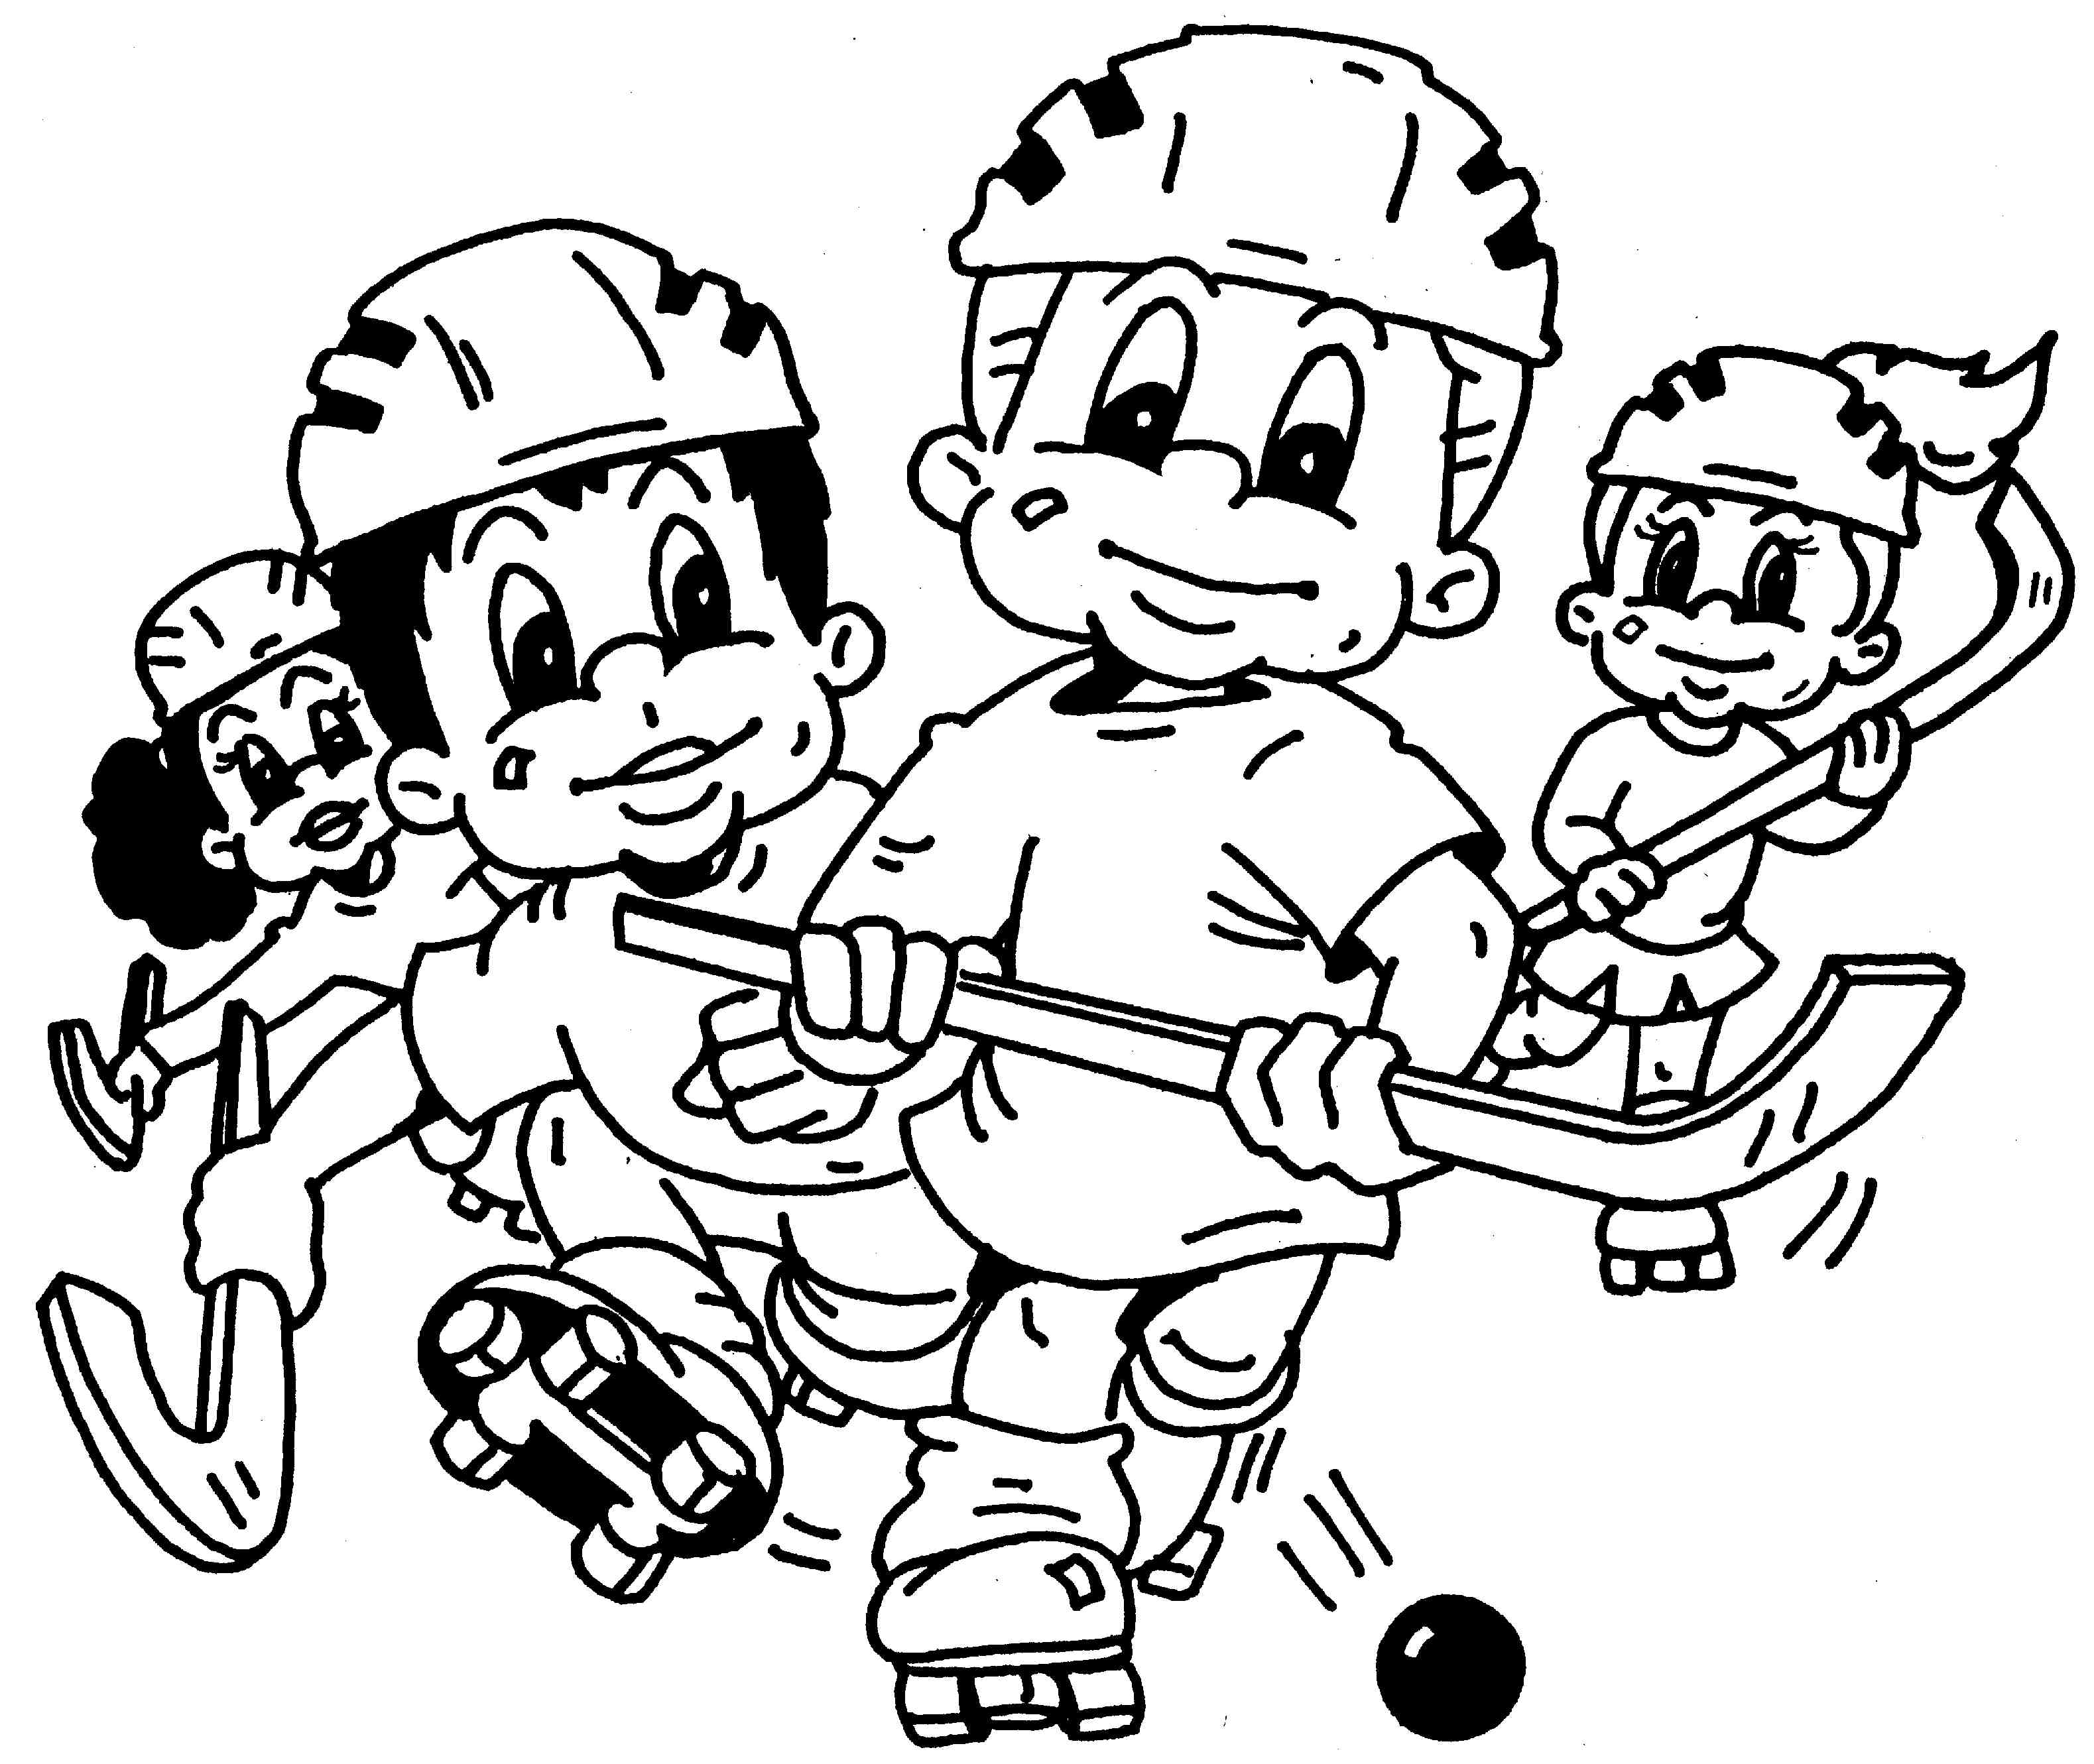 bruins coloring pages - photo#26